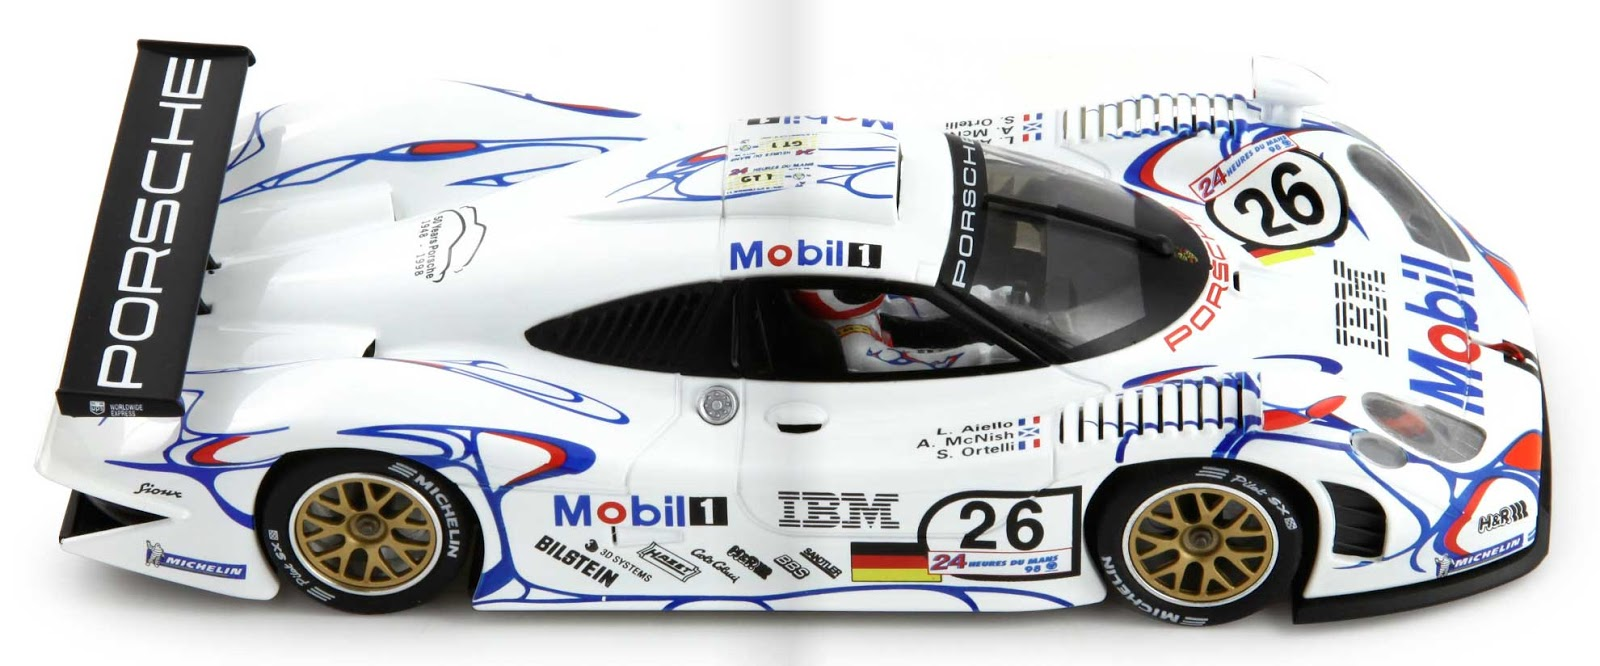 manicslots 39 slot cars and scenery news porsche 911 gt1 le mans. Black Bedroom Furniture Sets. Home Design Ideas